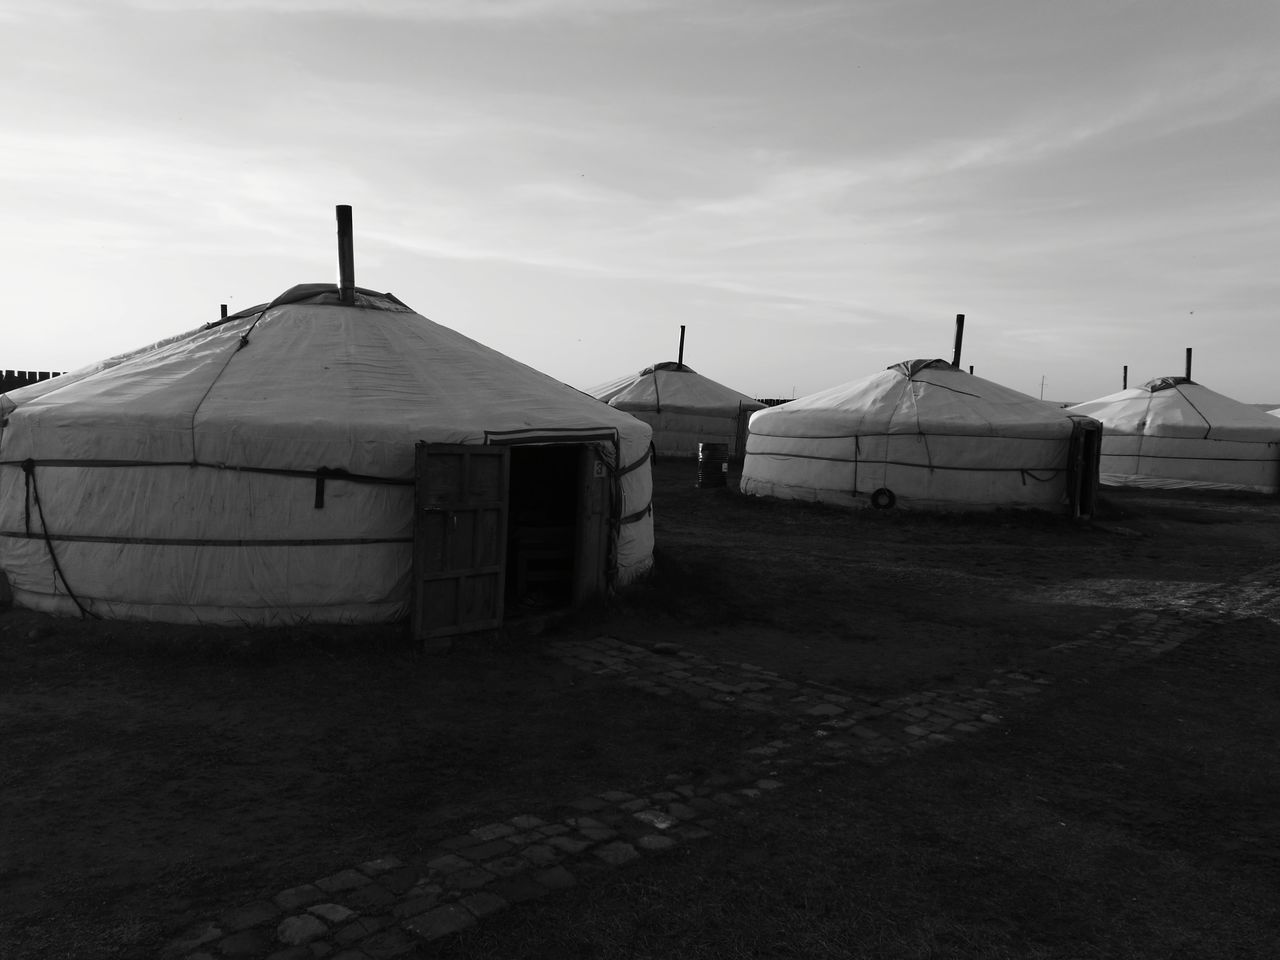 Mongolia Nomads Nomadiclife Jurte Yurtlife Blackandwhite Nofilter HuaweiP9tTraditional Traditional Culture Outdoors